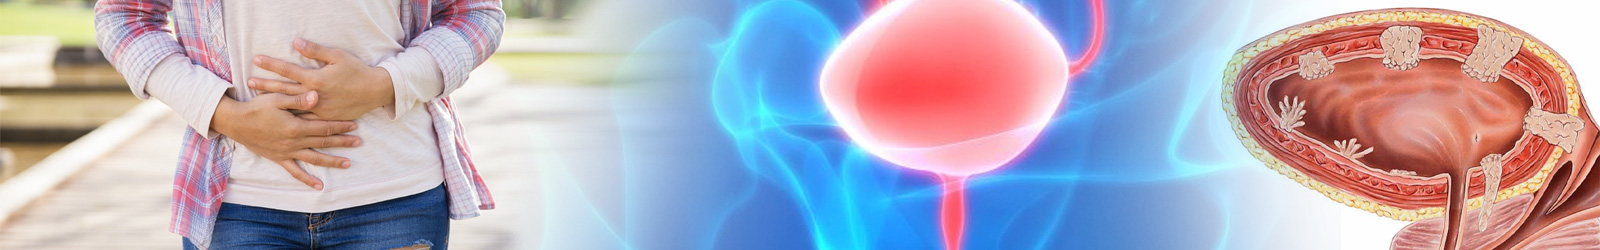 urinary cancer treatment chennai